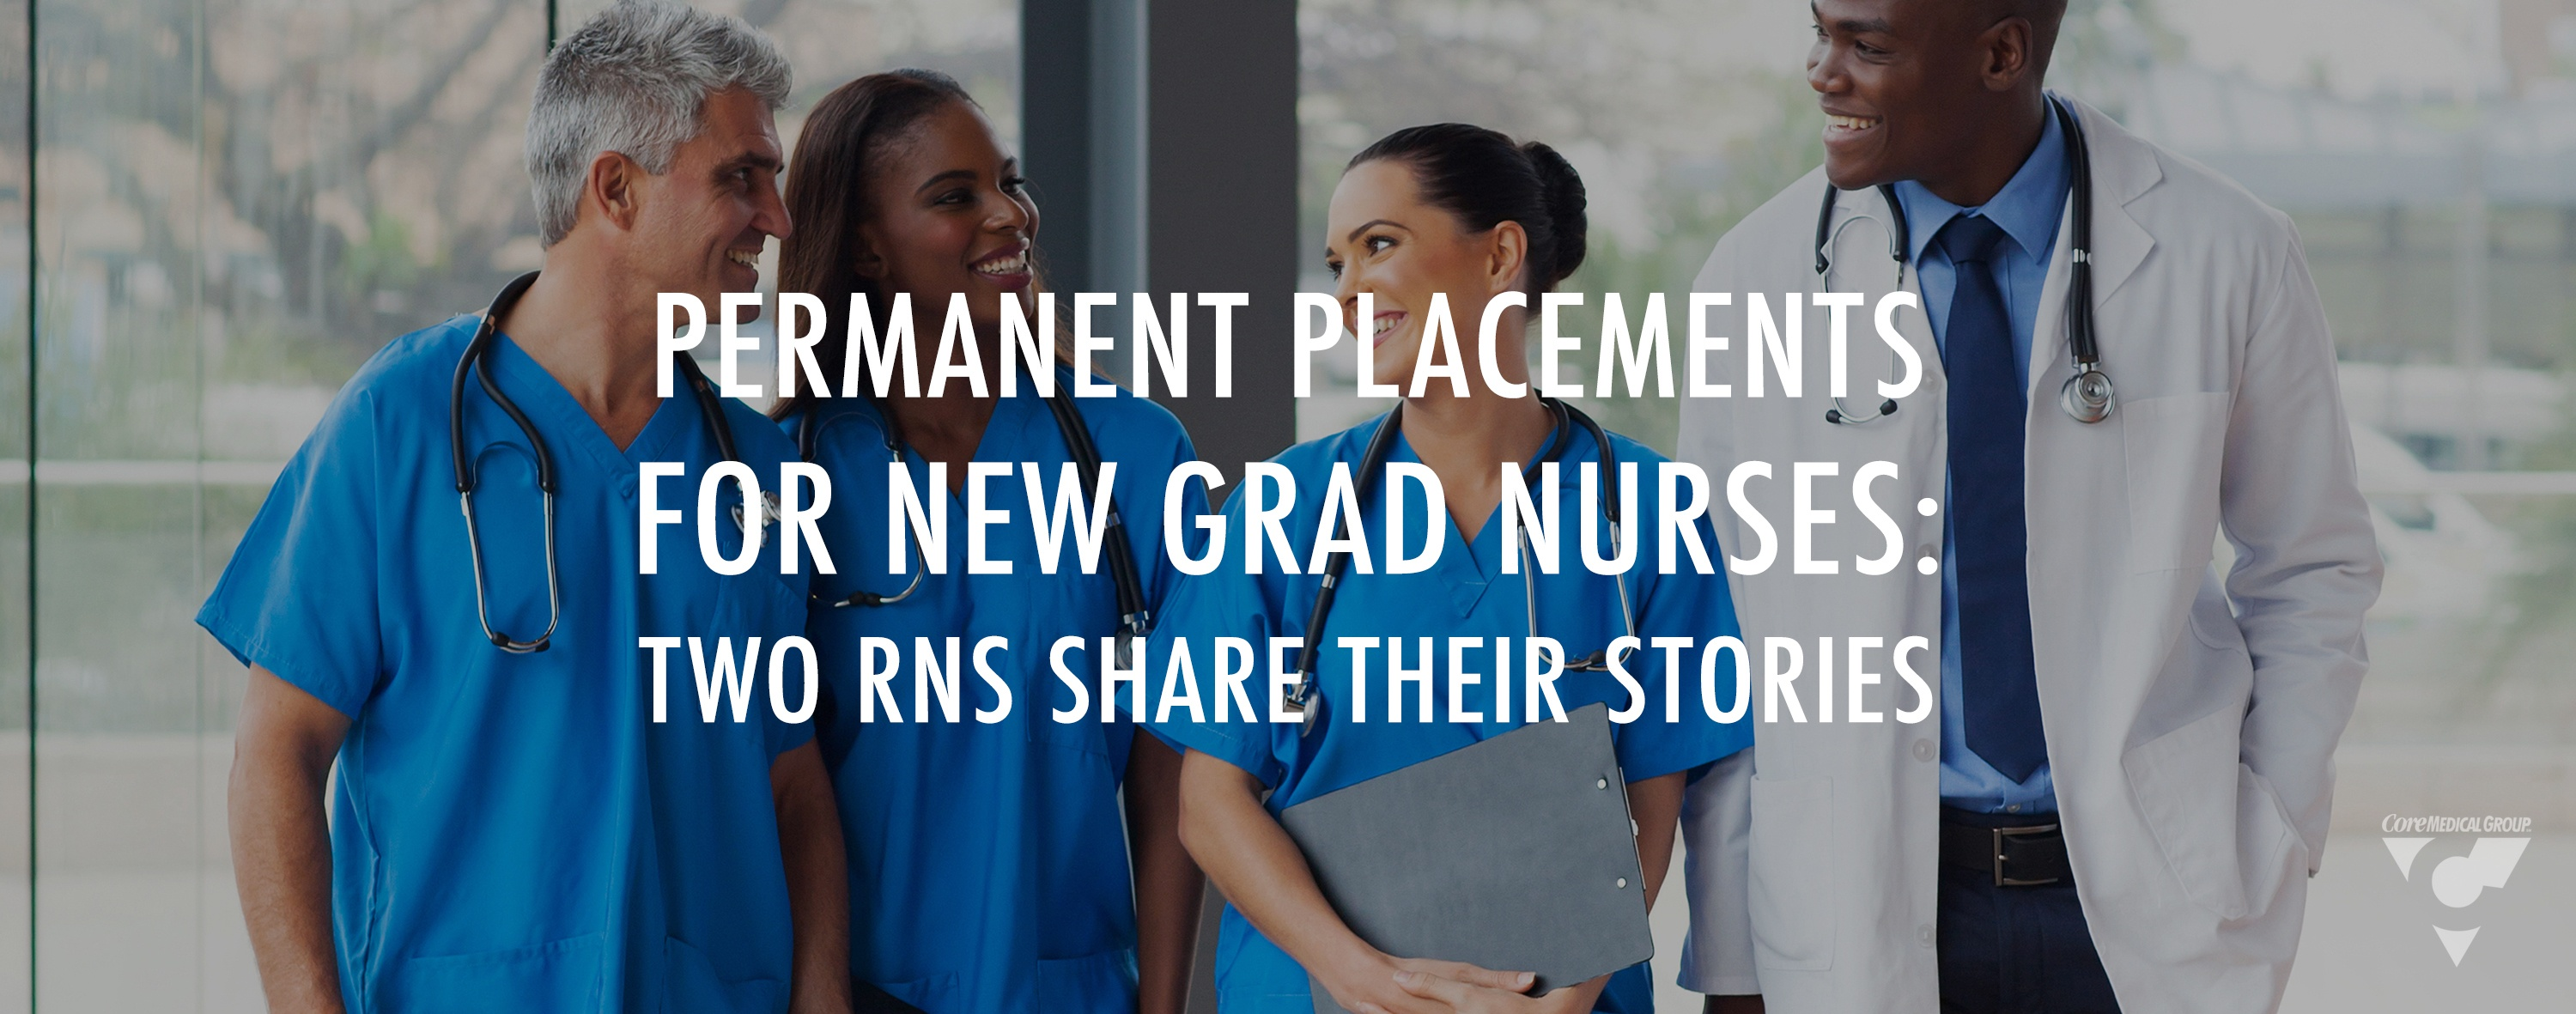 CMG_Blog_Permanet_Placement_For_New_Grad_Nurses